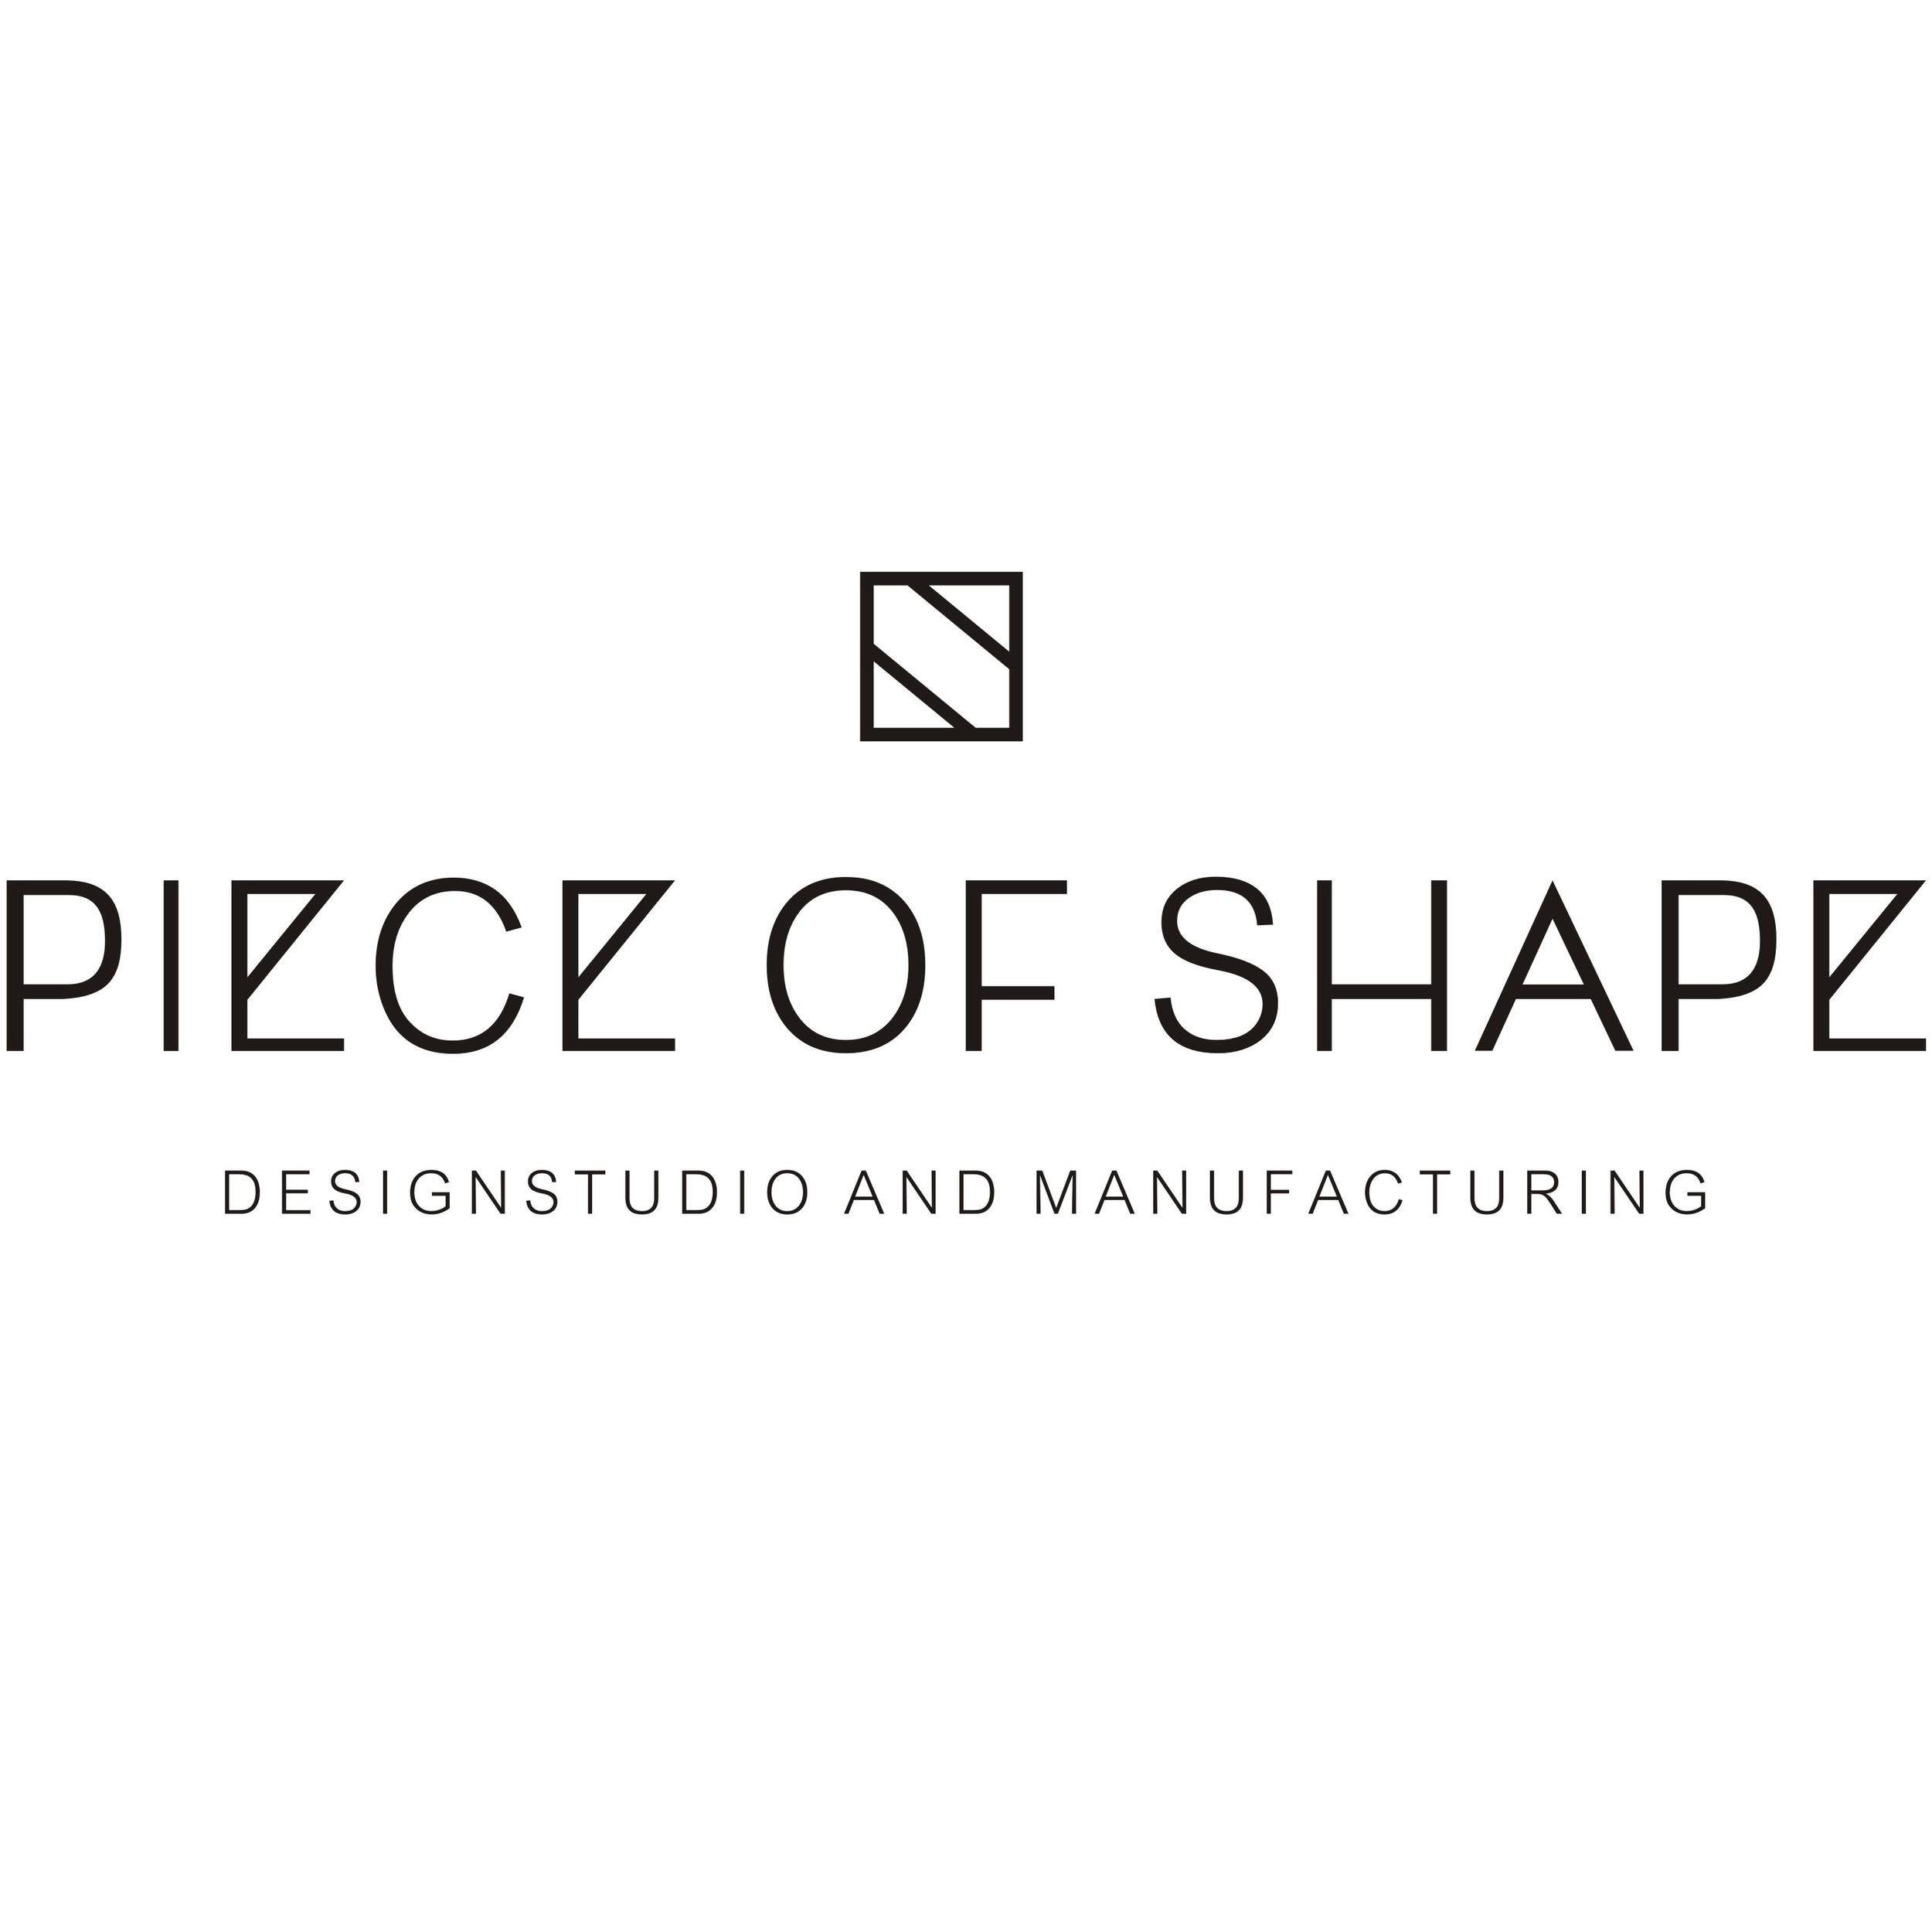 Piece of Shape_LOGO_JPEG.jpg